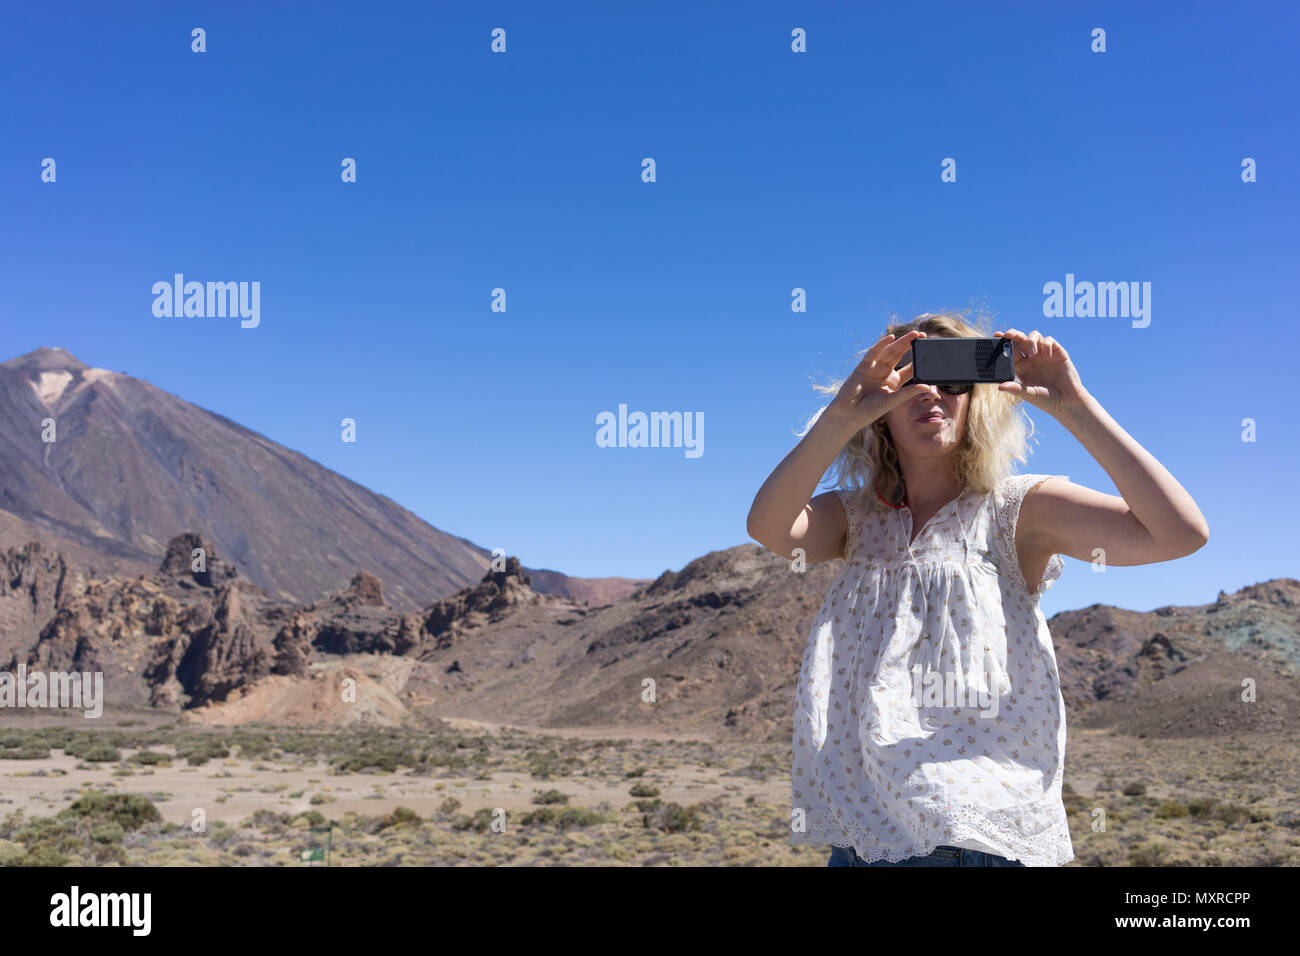 Woman taking a picture on her mobile phone with a volcano in the background - Stock Image